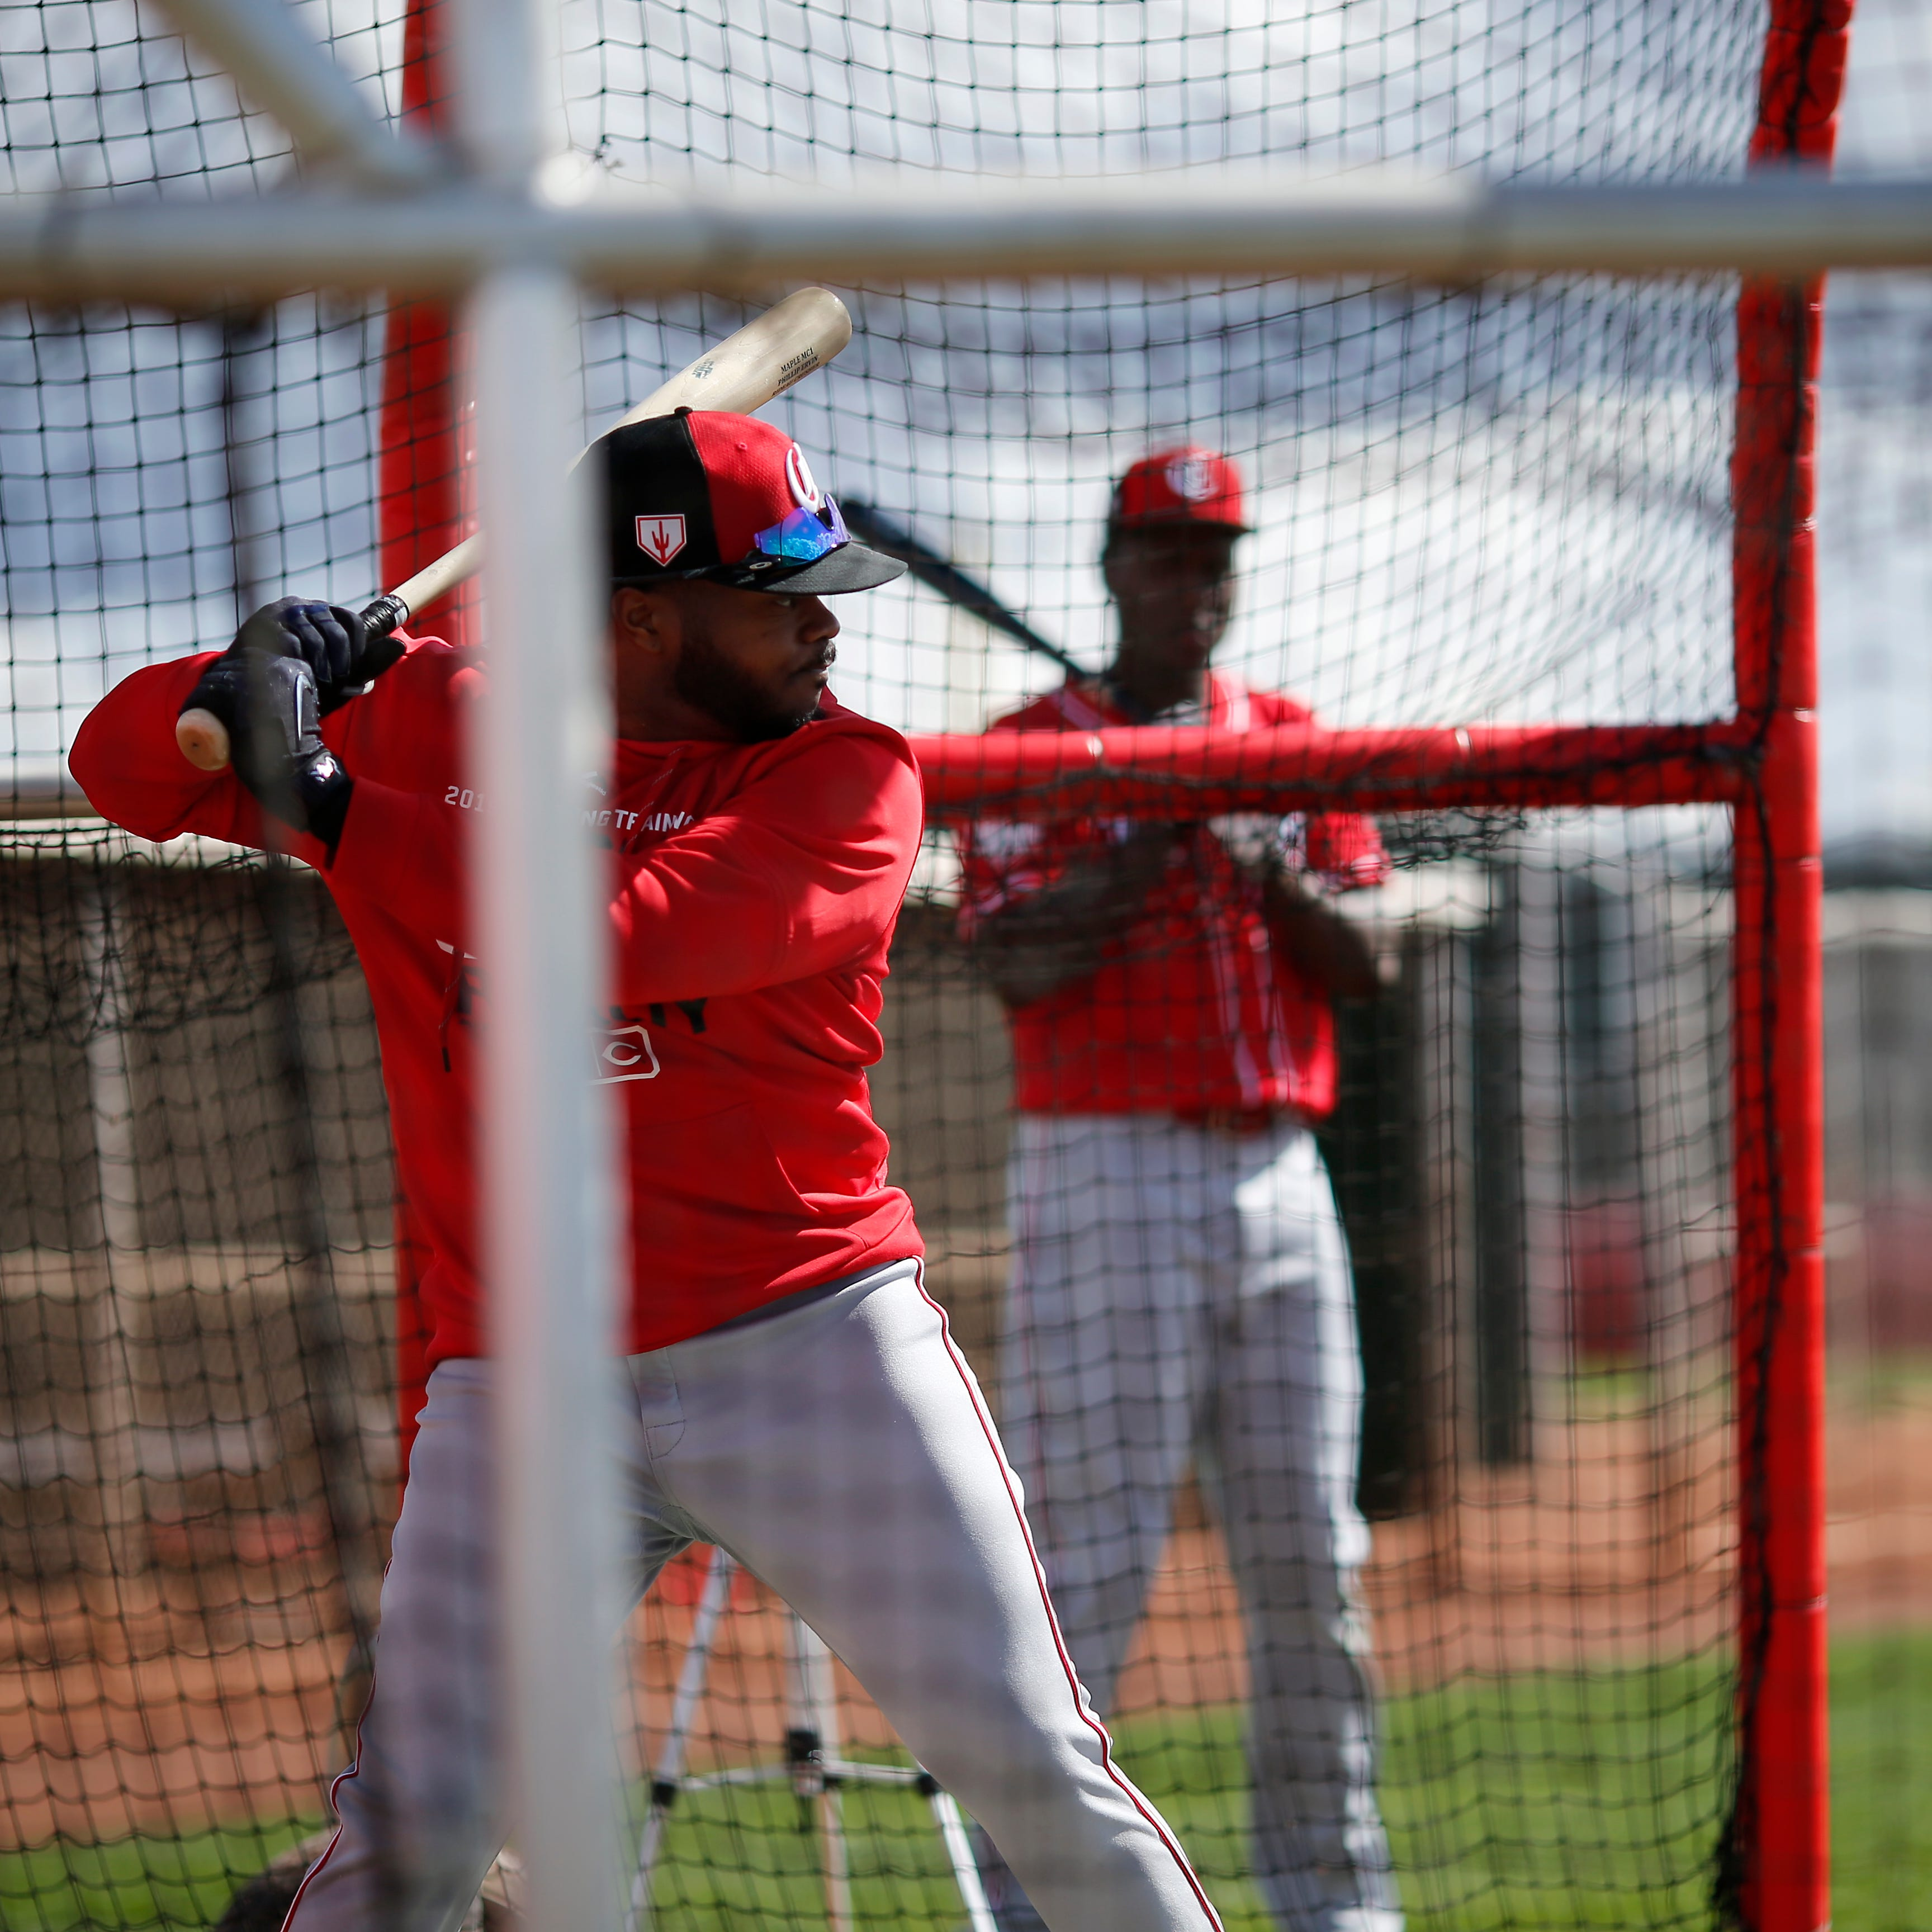 With ongoing competitions, Cincinnati Reds outfielders standing out during spring training